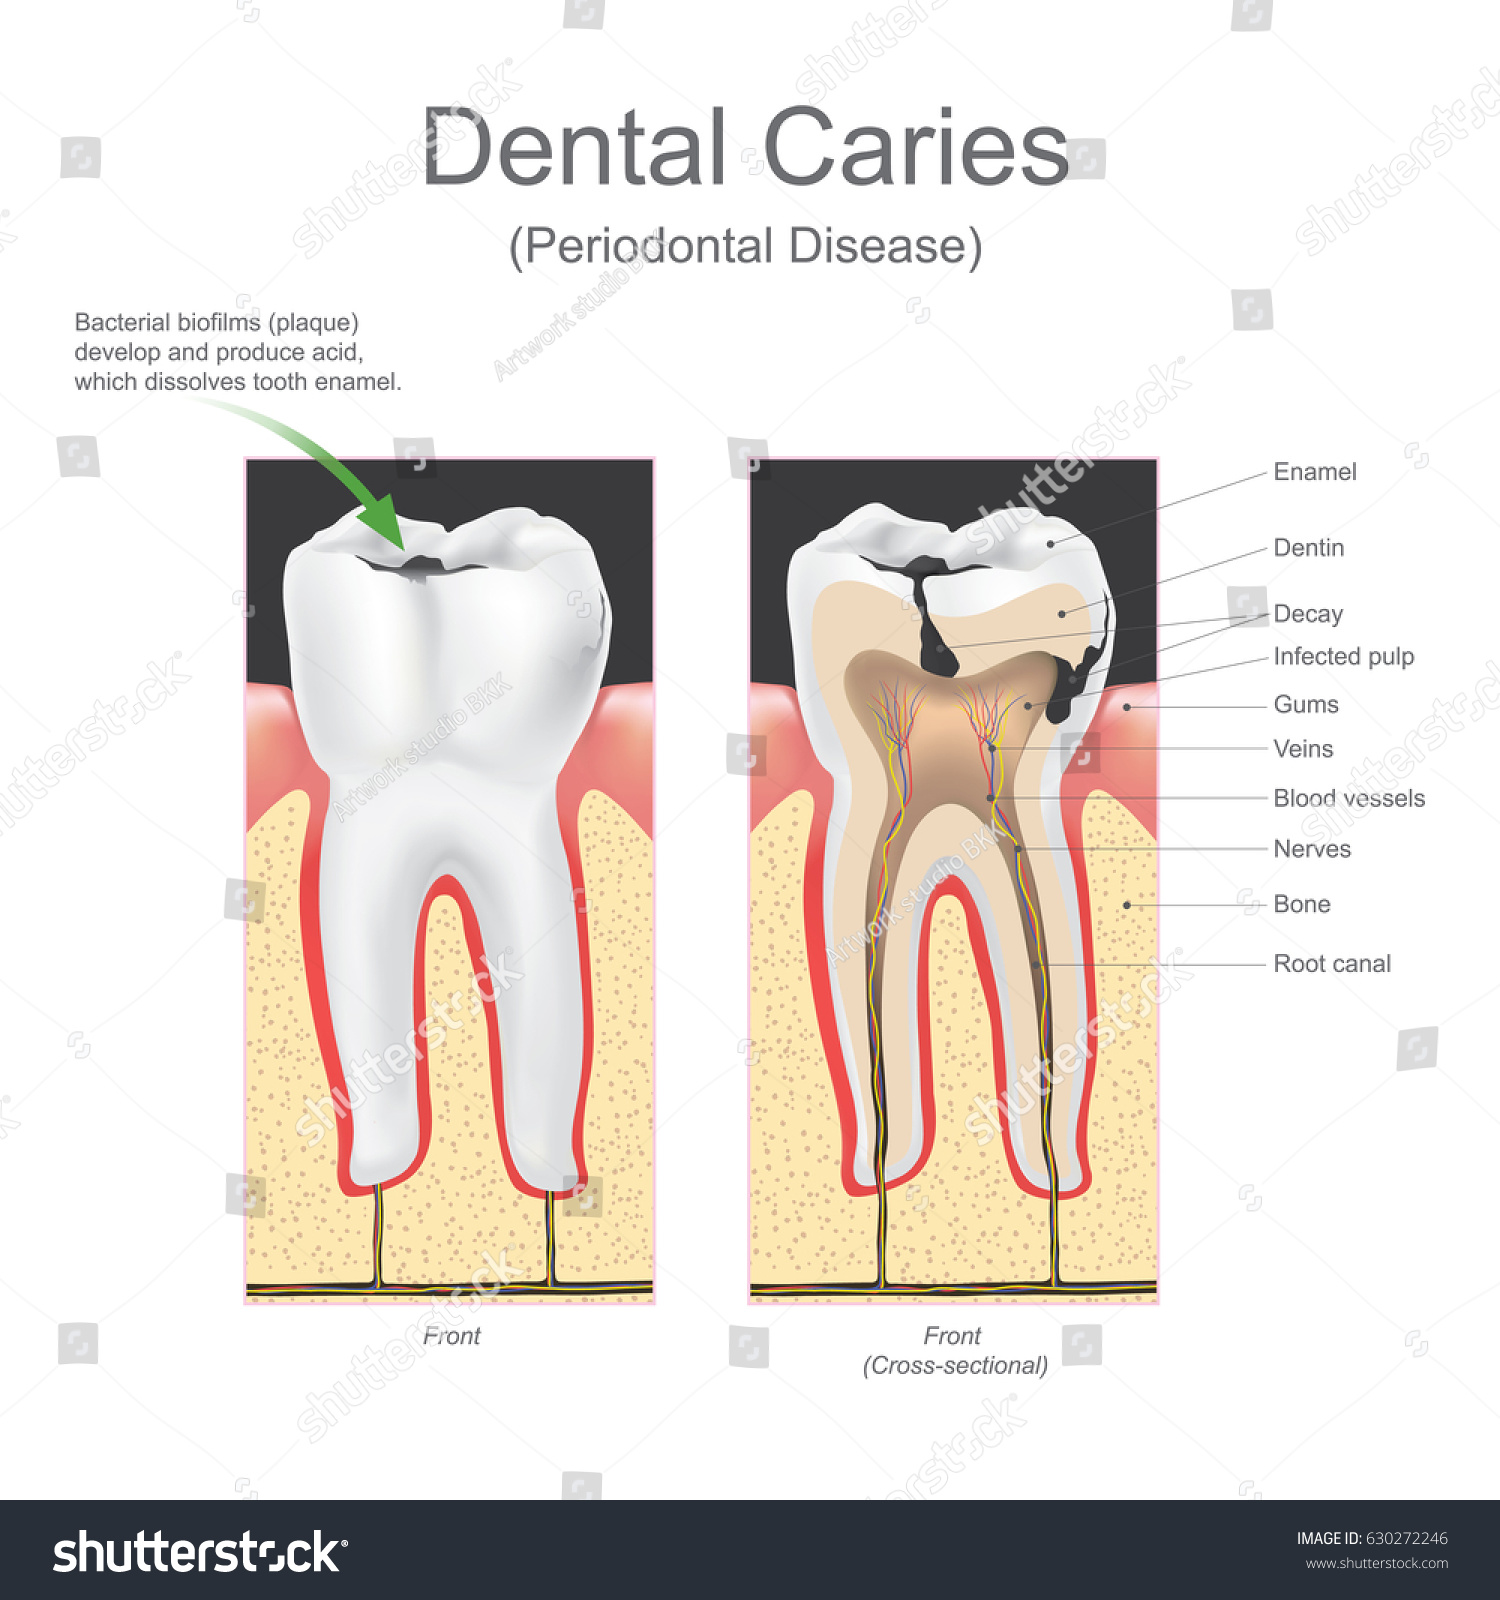 Primary tooth and permanent tooth illustration shows permanent primary tooth and permanent tooth illustration shows permanent tooth located below the deciduous tooth baby teeth are lost due to the pressure of the ccuart Gallery